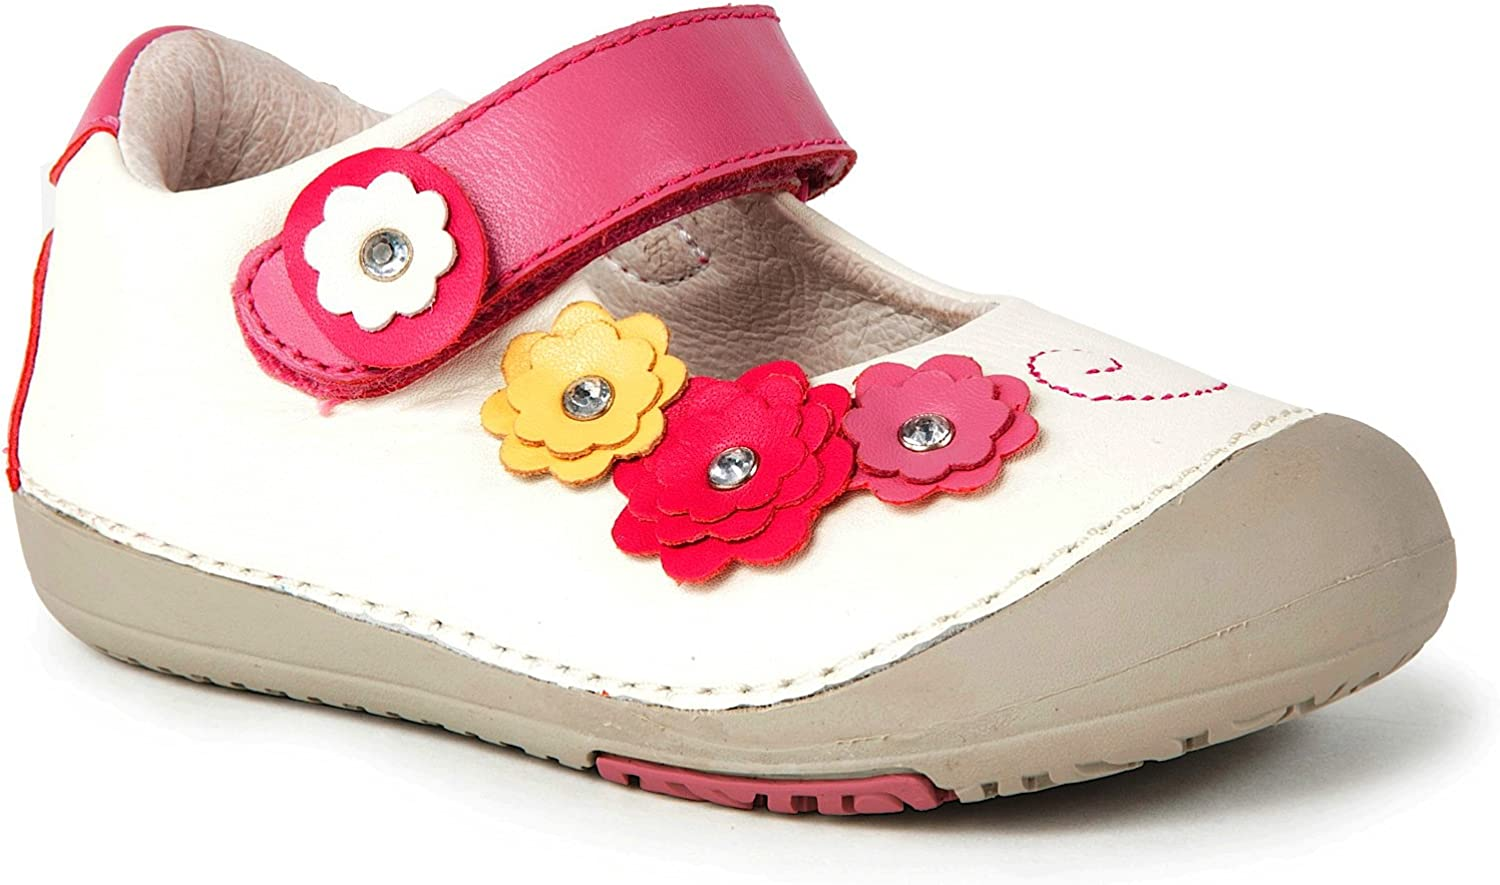 Toddler Baby Girl Children Flower Leather Single Soft Sole Princess Shoes S2 Lot